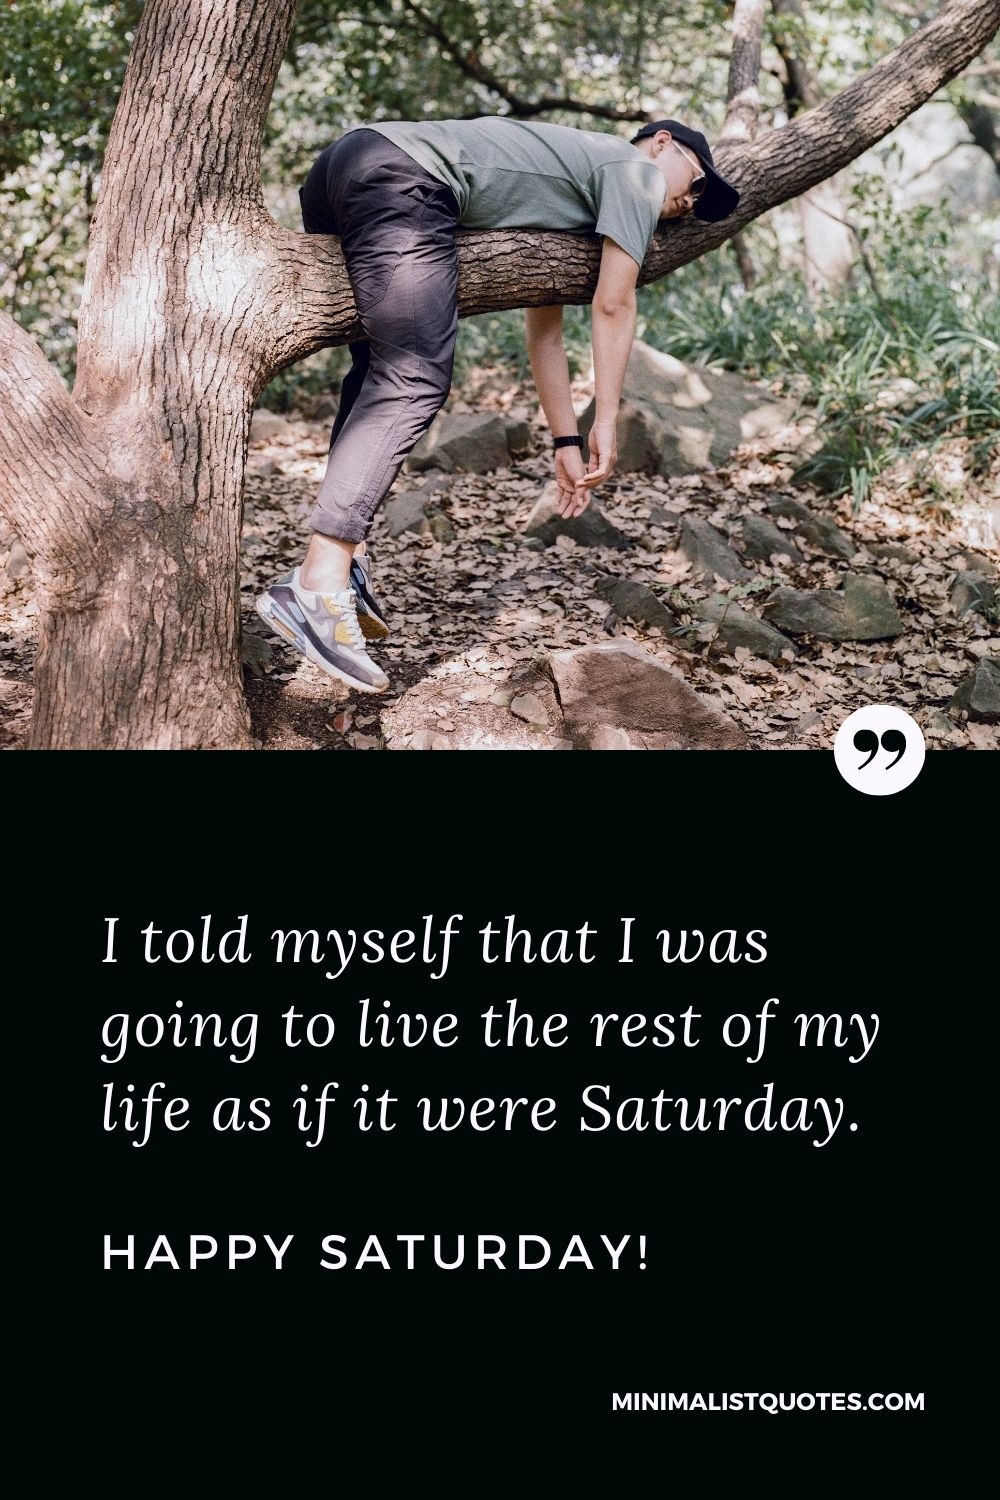 Saturday Quote, Wish & Message With Image: I told myself that I was going to live the rest of my life as if it were Saturday. Happy Saturday!